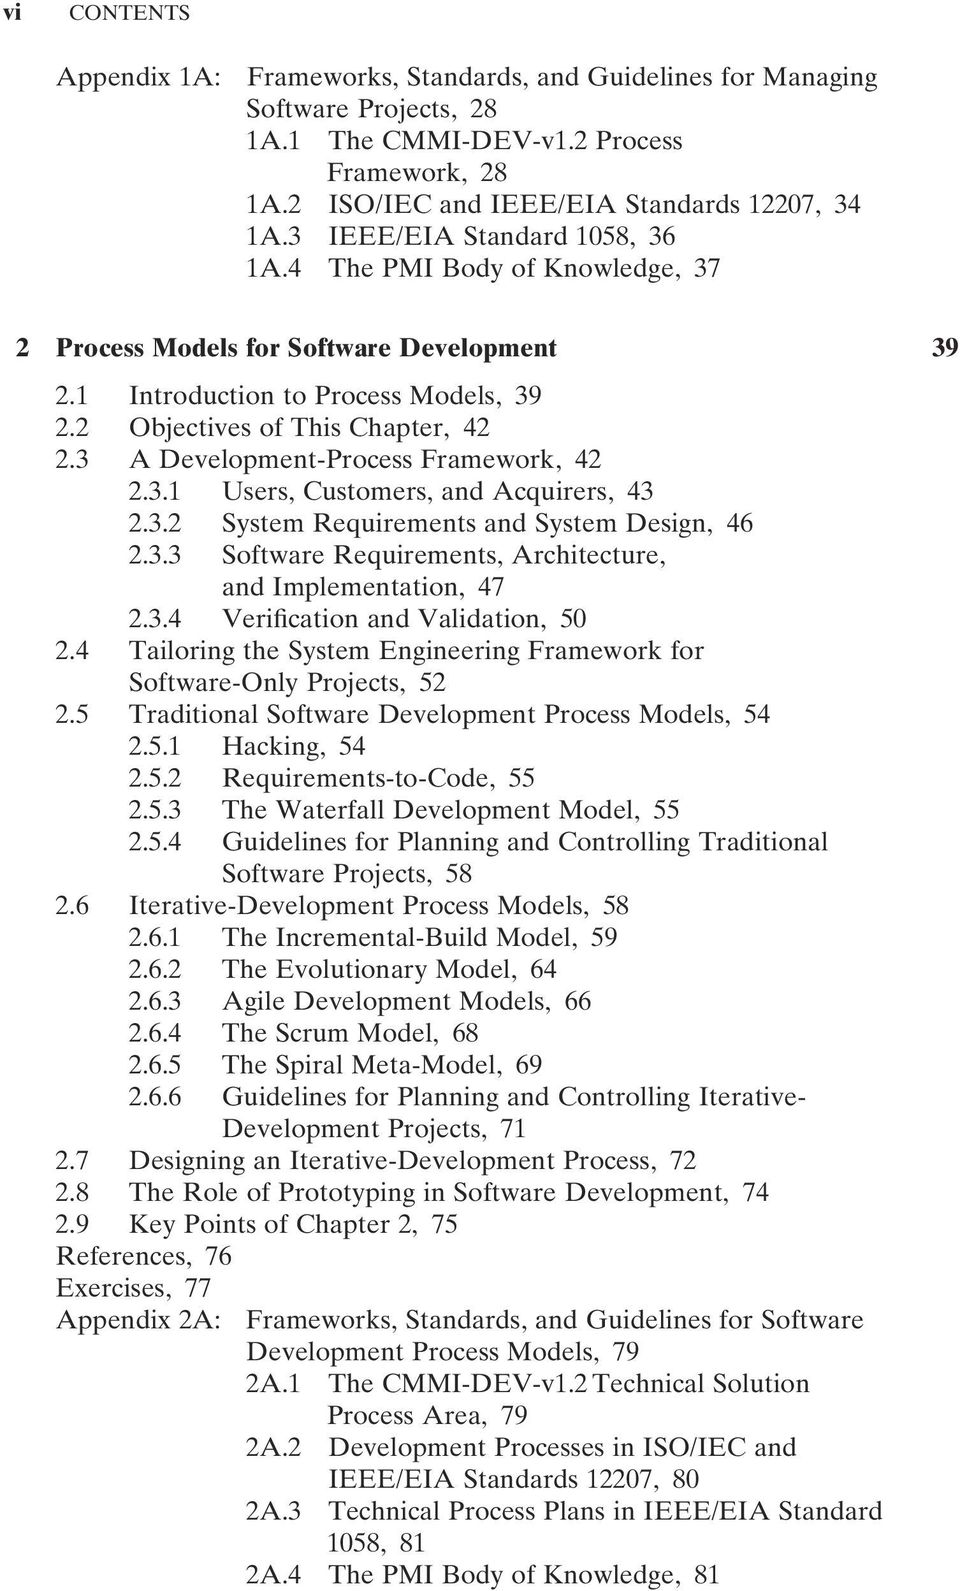 3 A Development-Process Framework, 42 2.3.1 Users, Customers, and Acquirers, 43 2.3.2 System Requirements and System Design, 46 2.3.3 Software Requirements, Architecture, and Implementation, 47 2.3.4 Verification and Validation, 50 2.